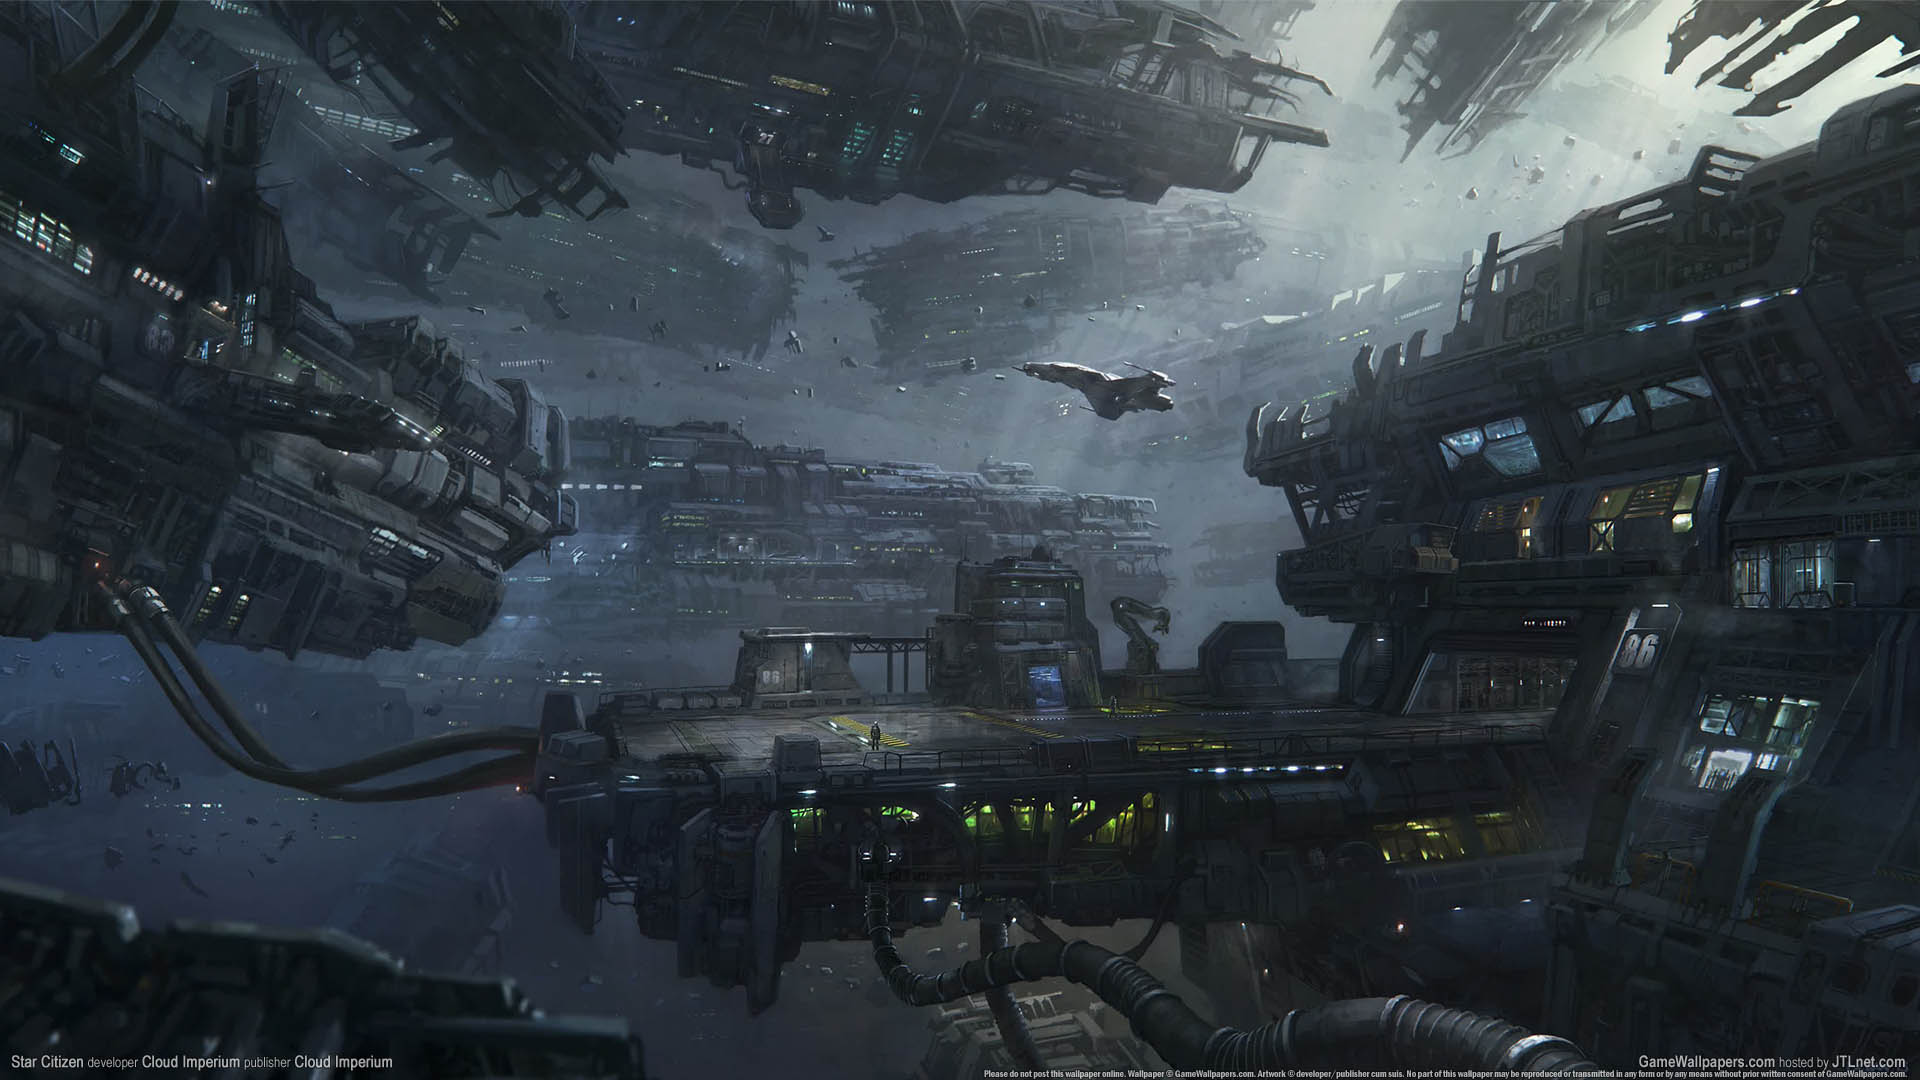 Star Citizen Wallpaper 1080p: Star Citizen Wallpaper 02 1920x1080